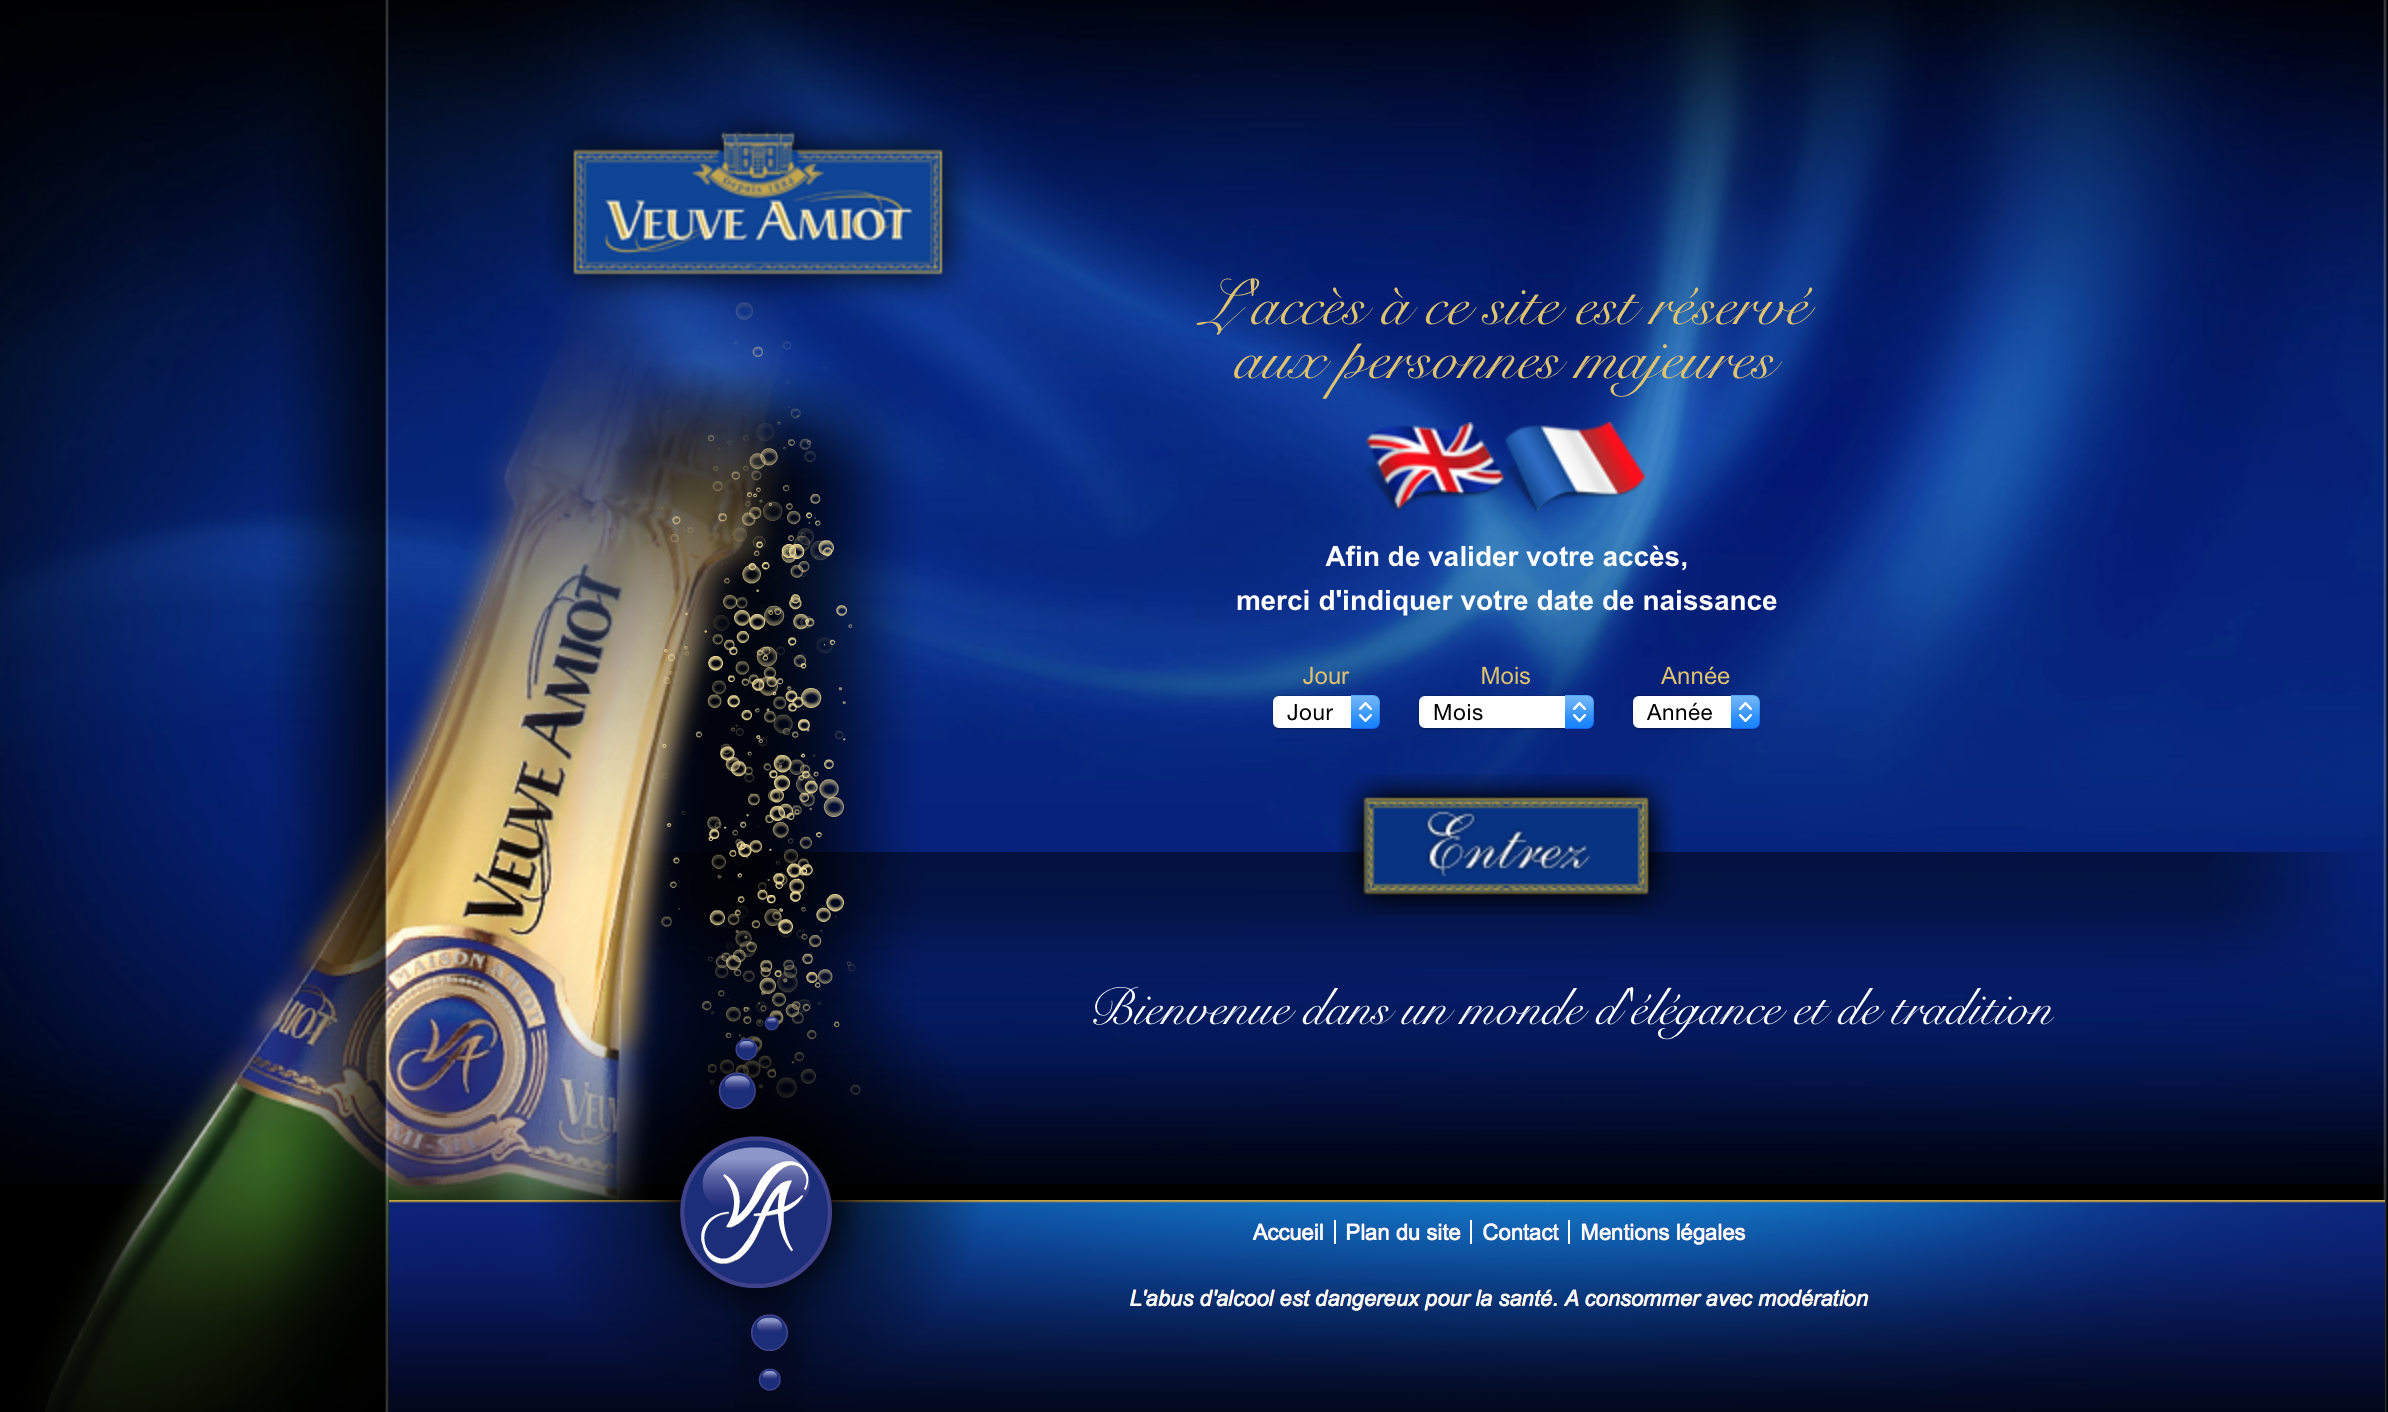 Caves Veuve Amiot